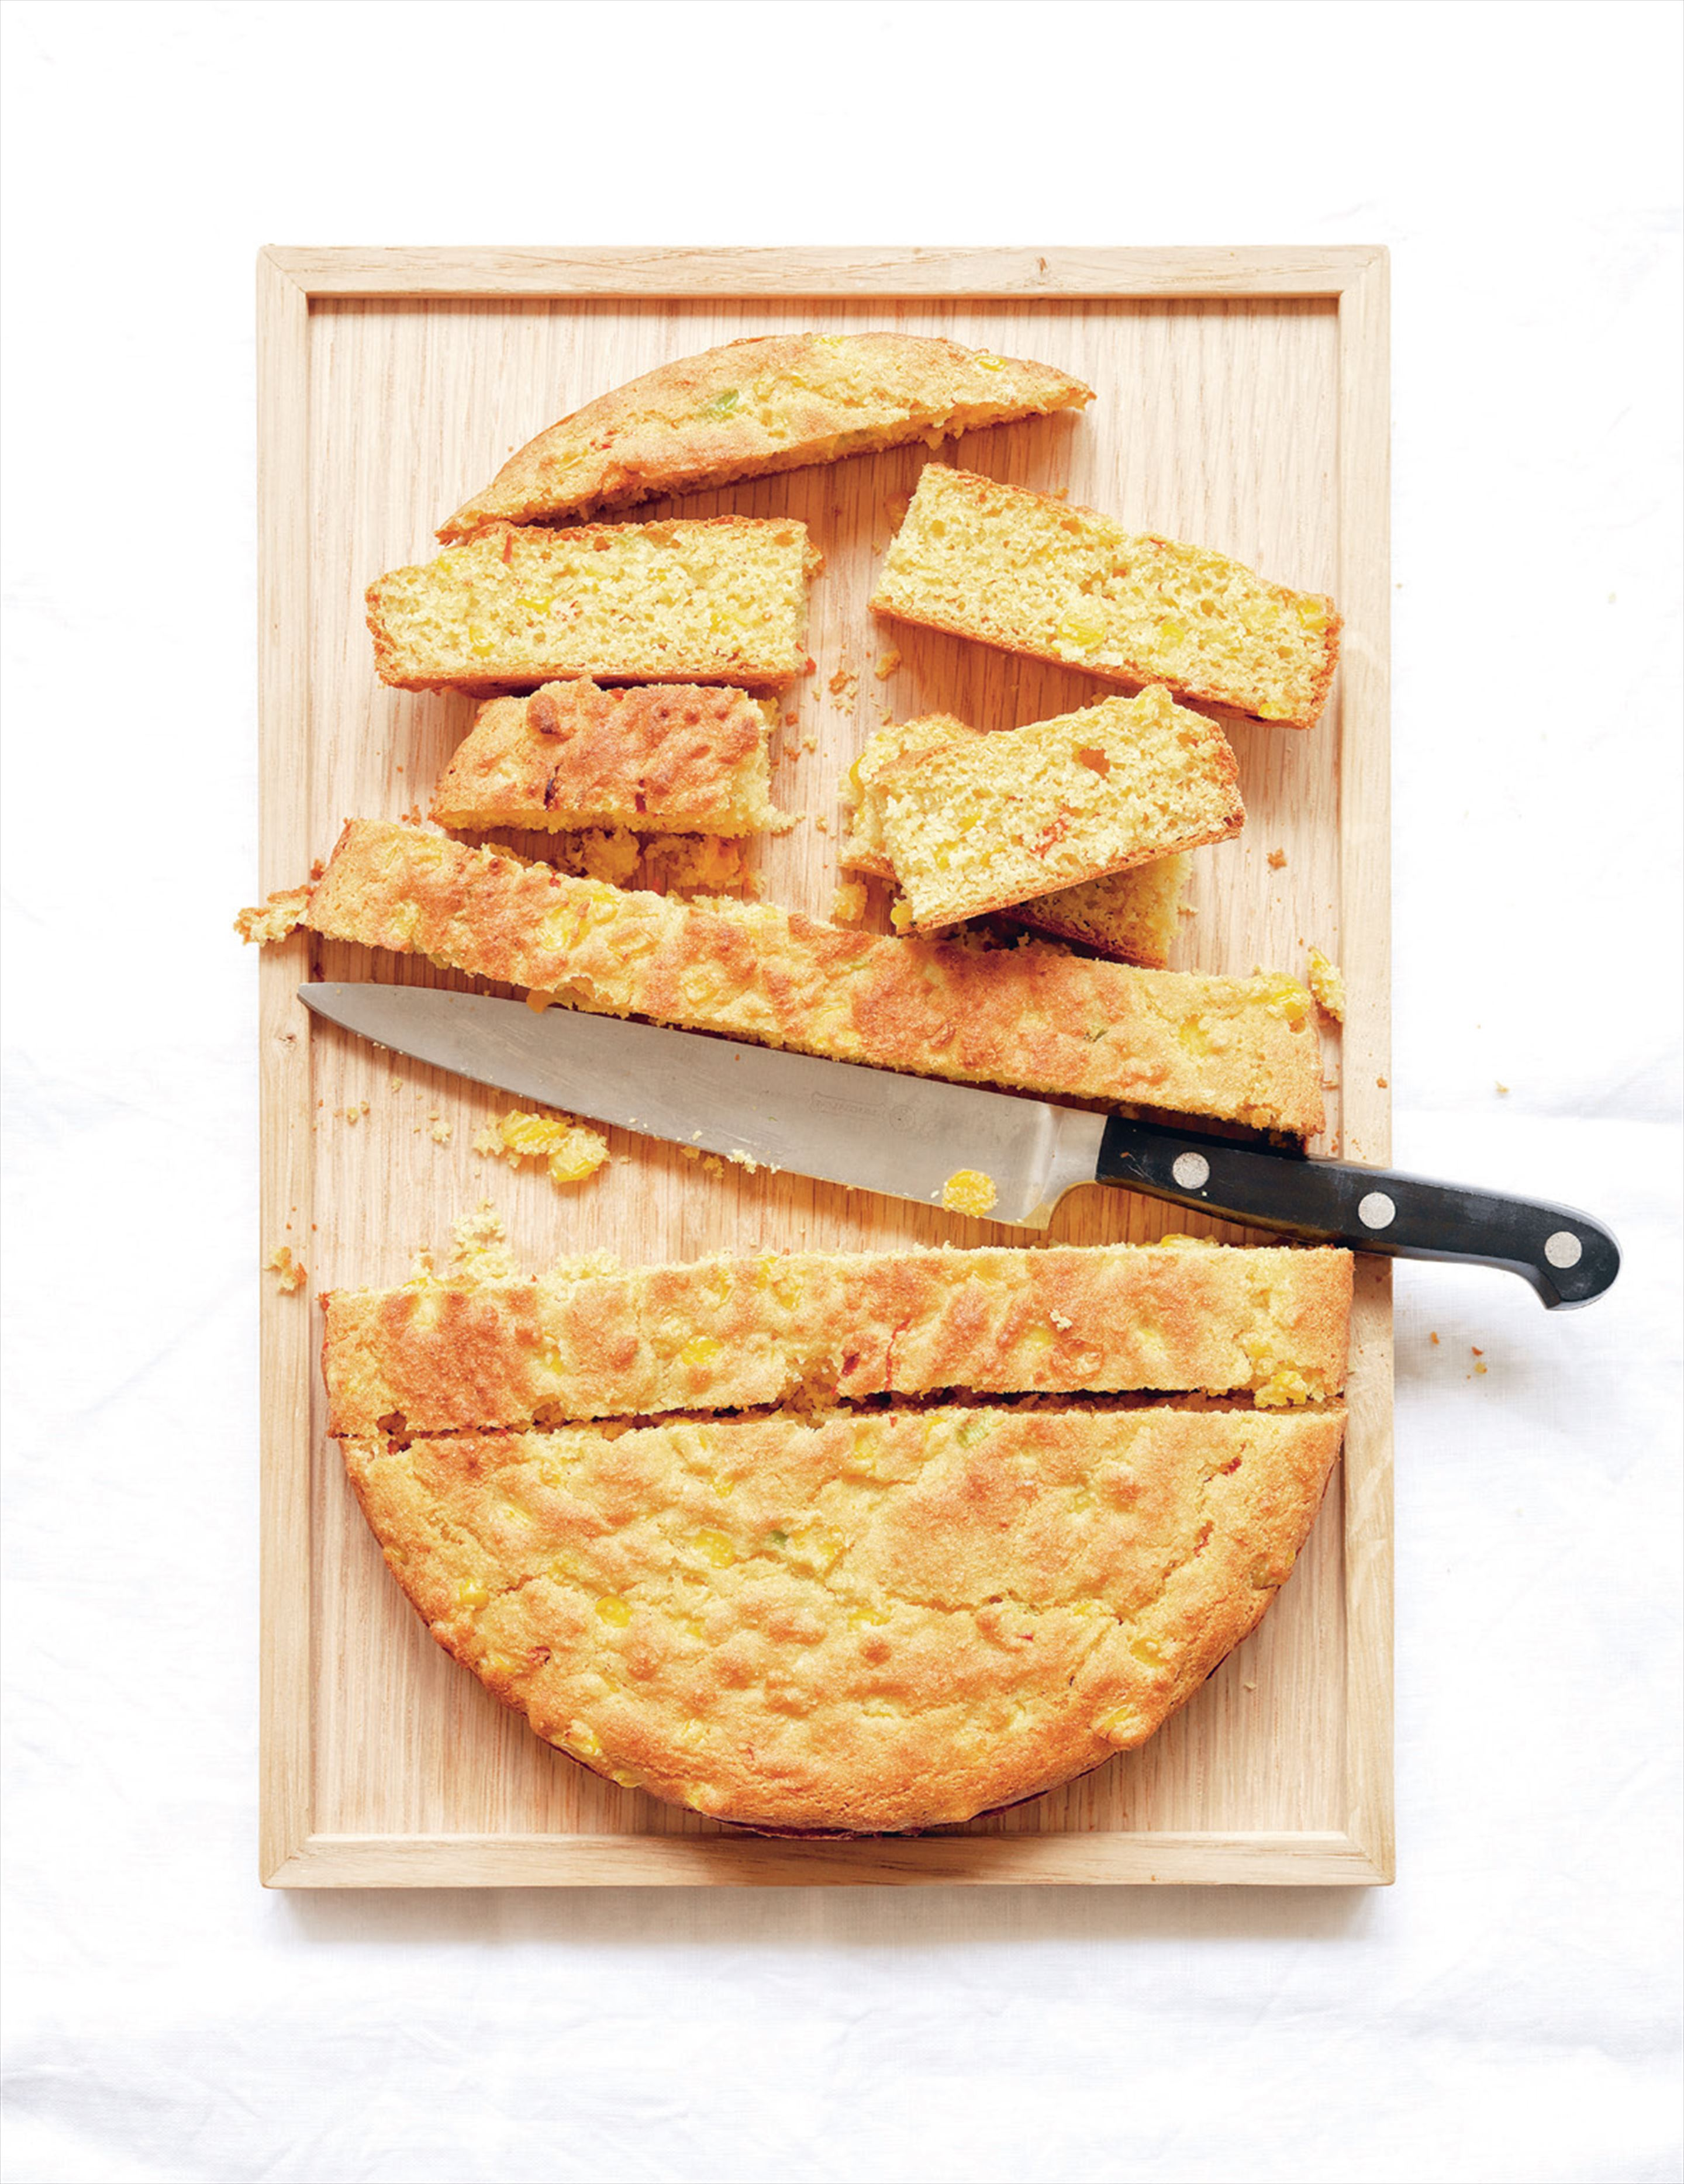 American corn bread